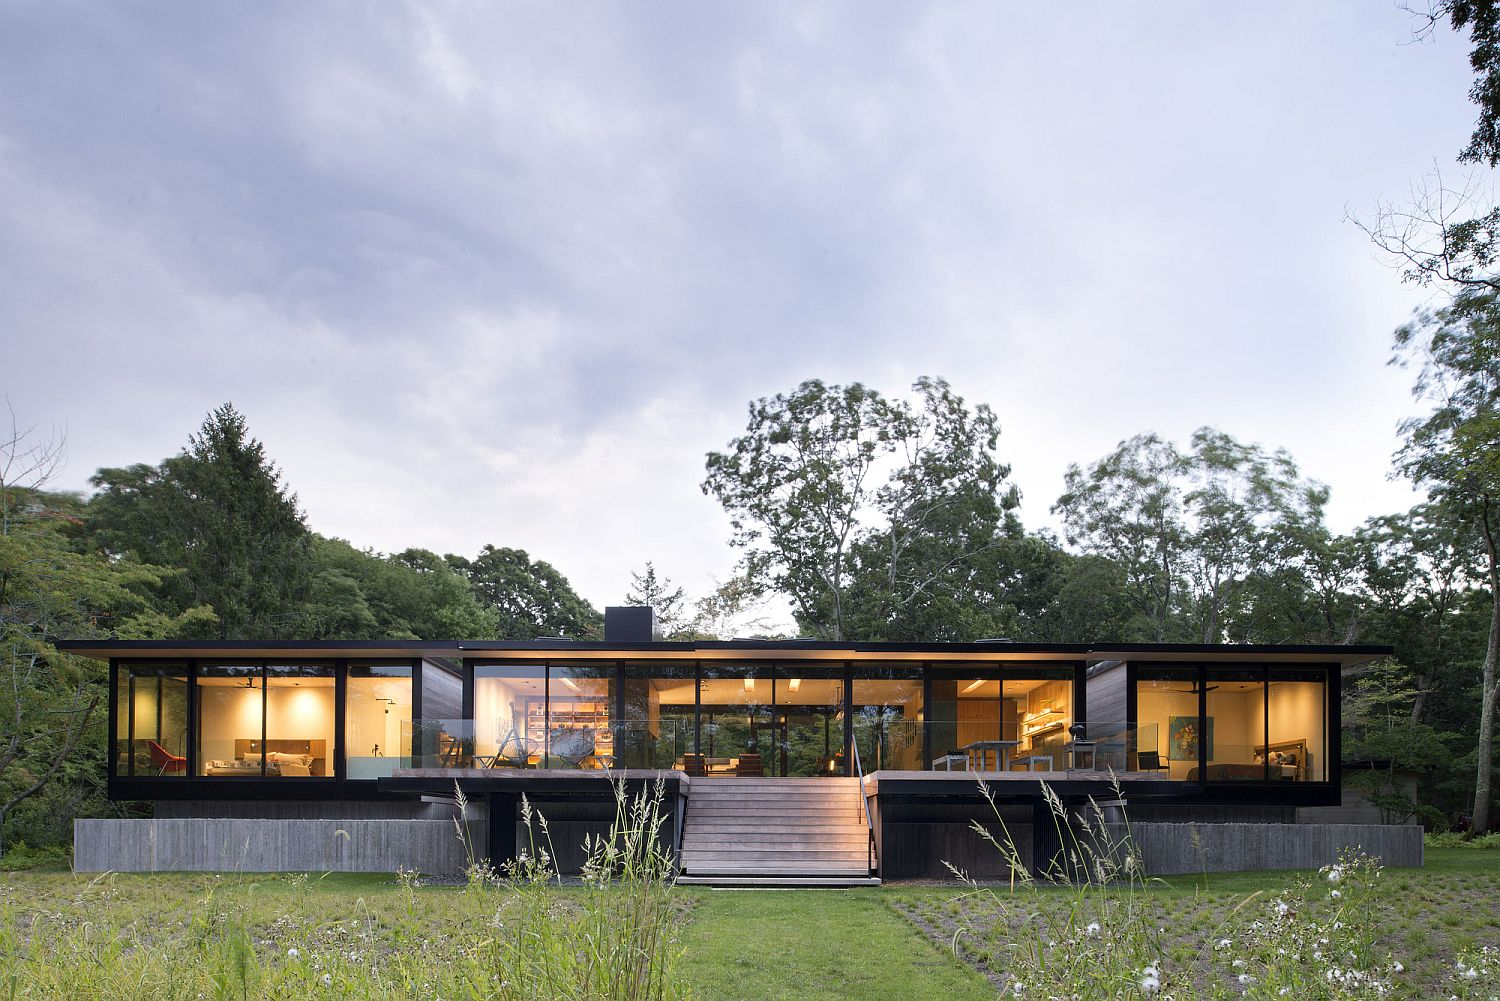 Steel frame wooden boards help shape the contemporary home